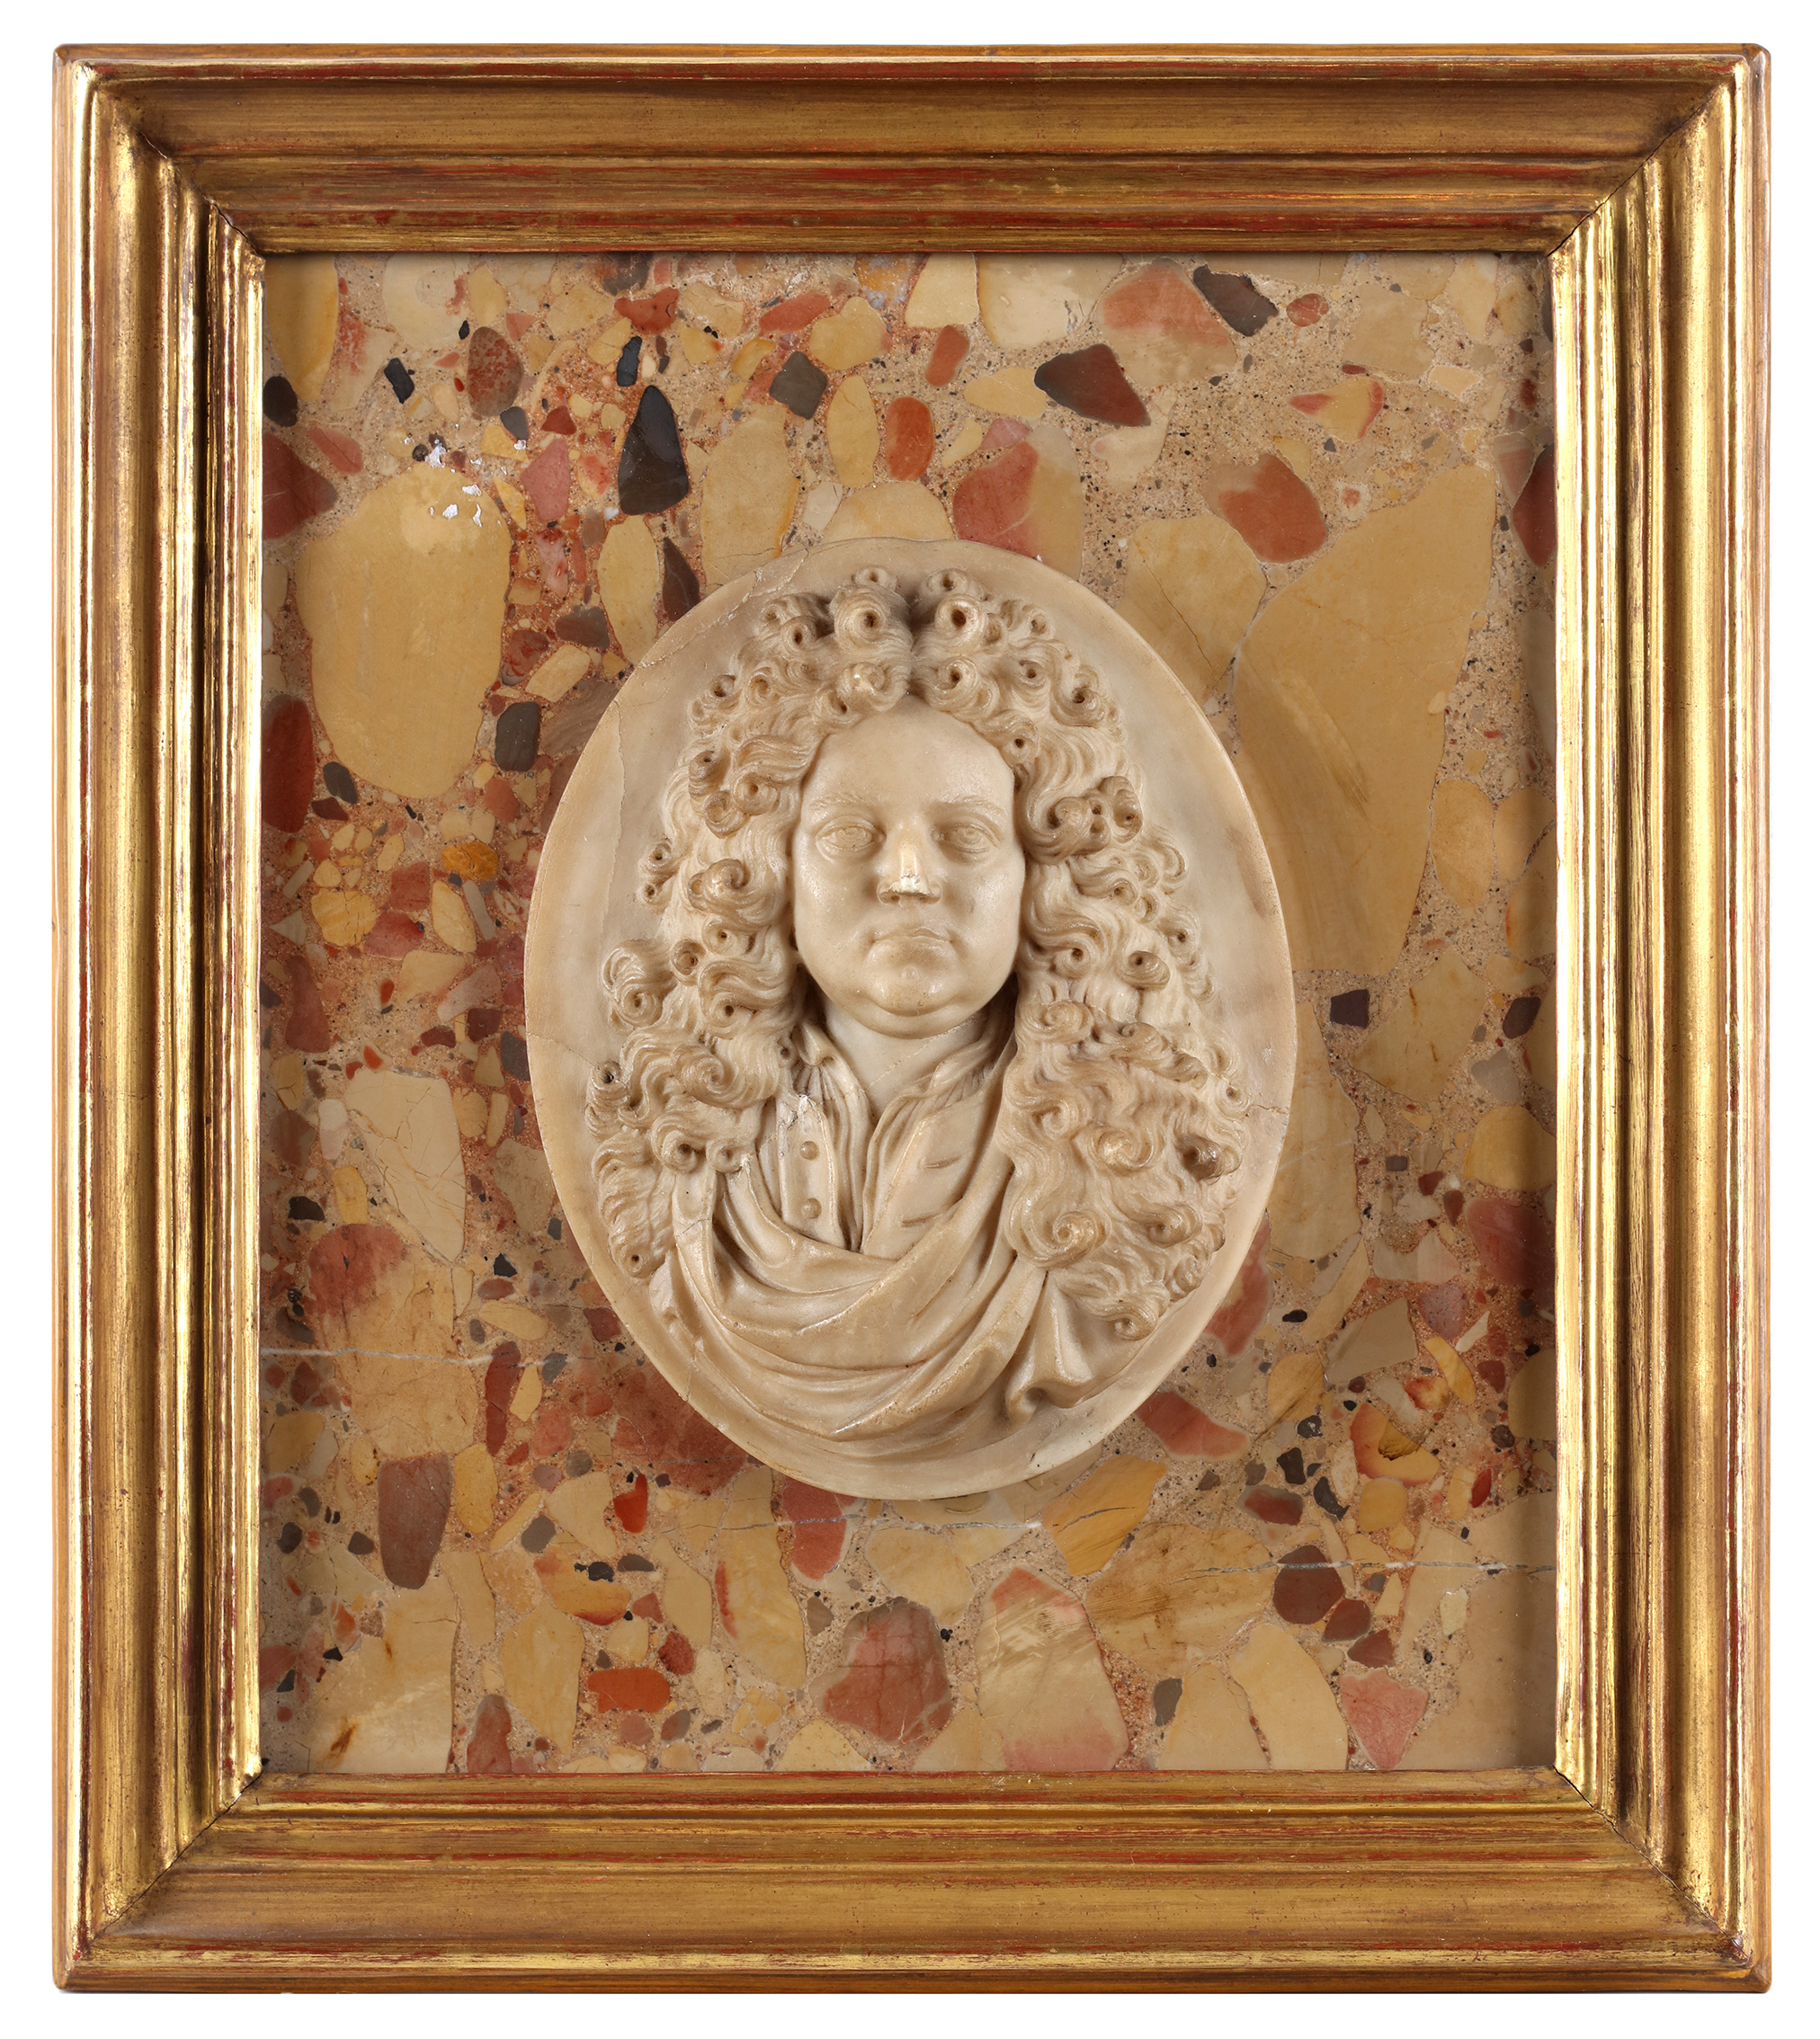 alabaster portrait of a French nobleman